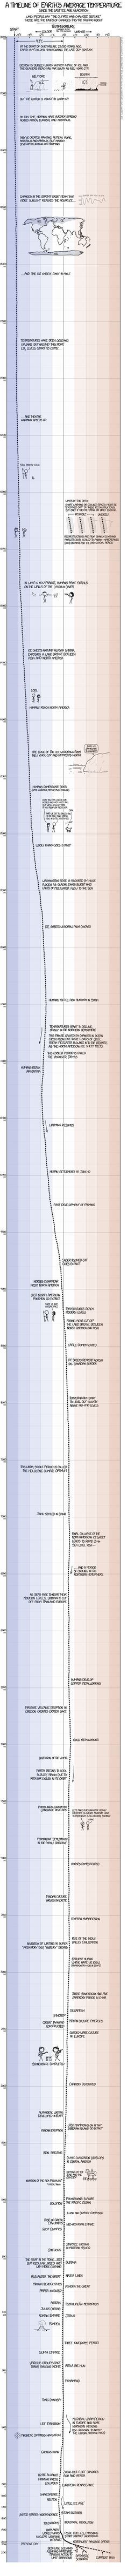 XKCD, a webcomic created by Randall Munroe, once again tackles climate change – this time in the form of a well-crafted, scrolling timeline of Earth's average temperature. Earth Science, Data Visualization, Global Warming, When Someone, Form, Climate Change, Feminism, Knowledge, Told You So